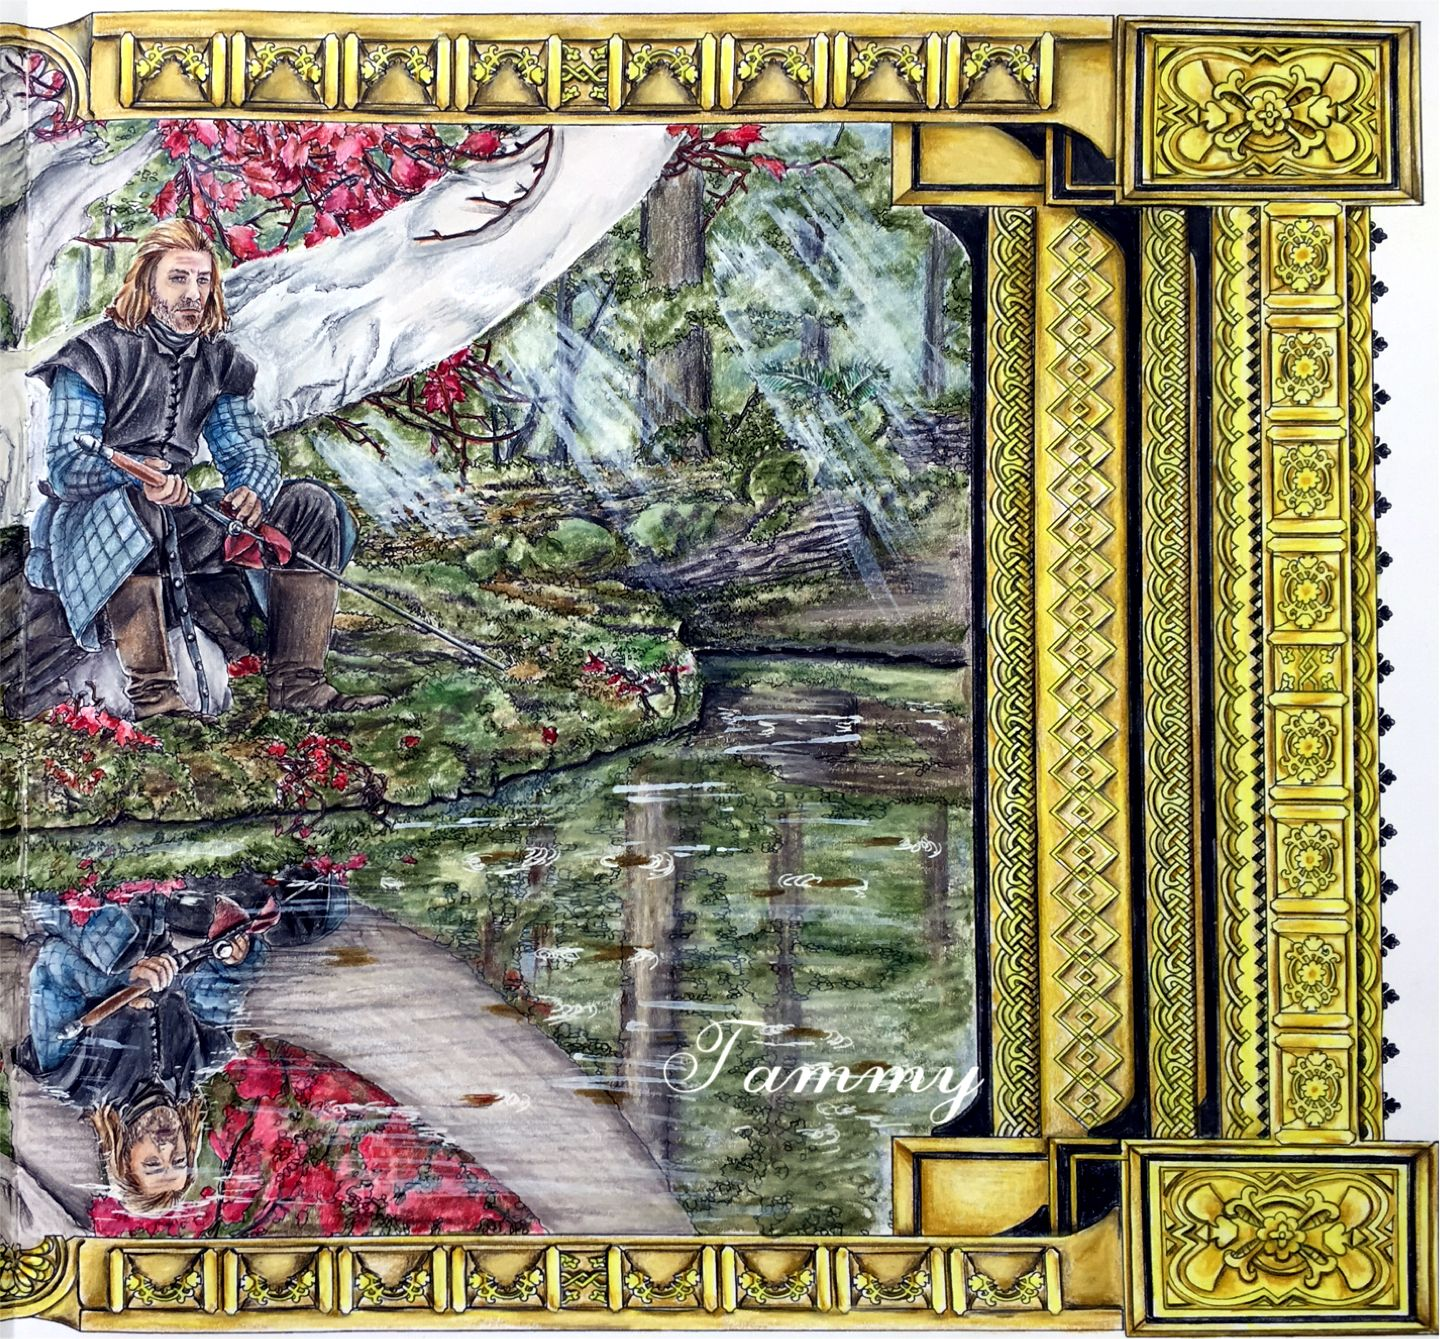 Eddard Stark Double Page Right Page From Game Of Thrones Hbo Hbo Game Of Thrones Harry Potter Movies Ned Stark